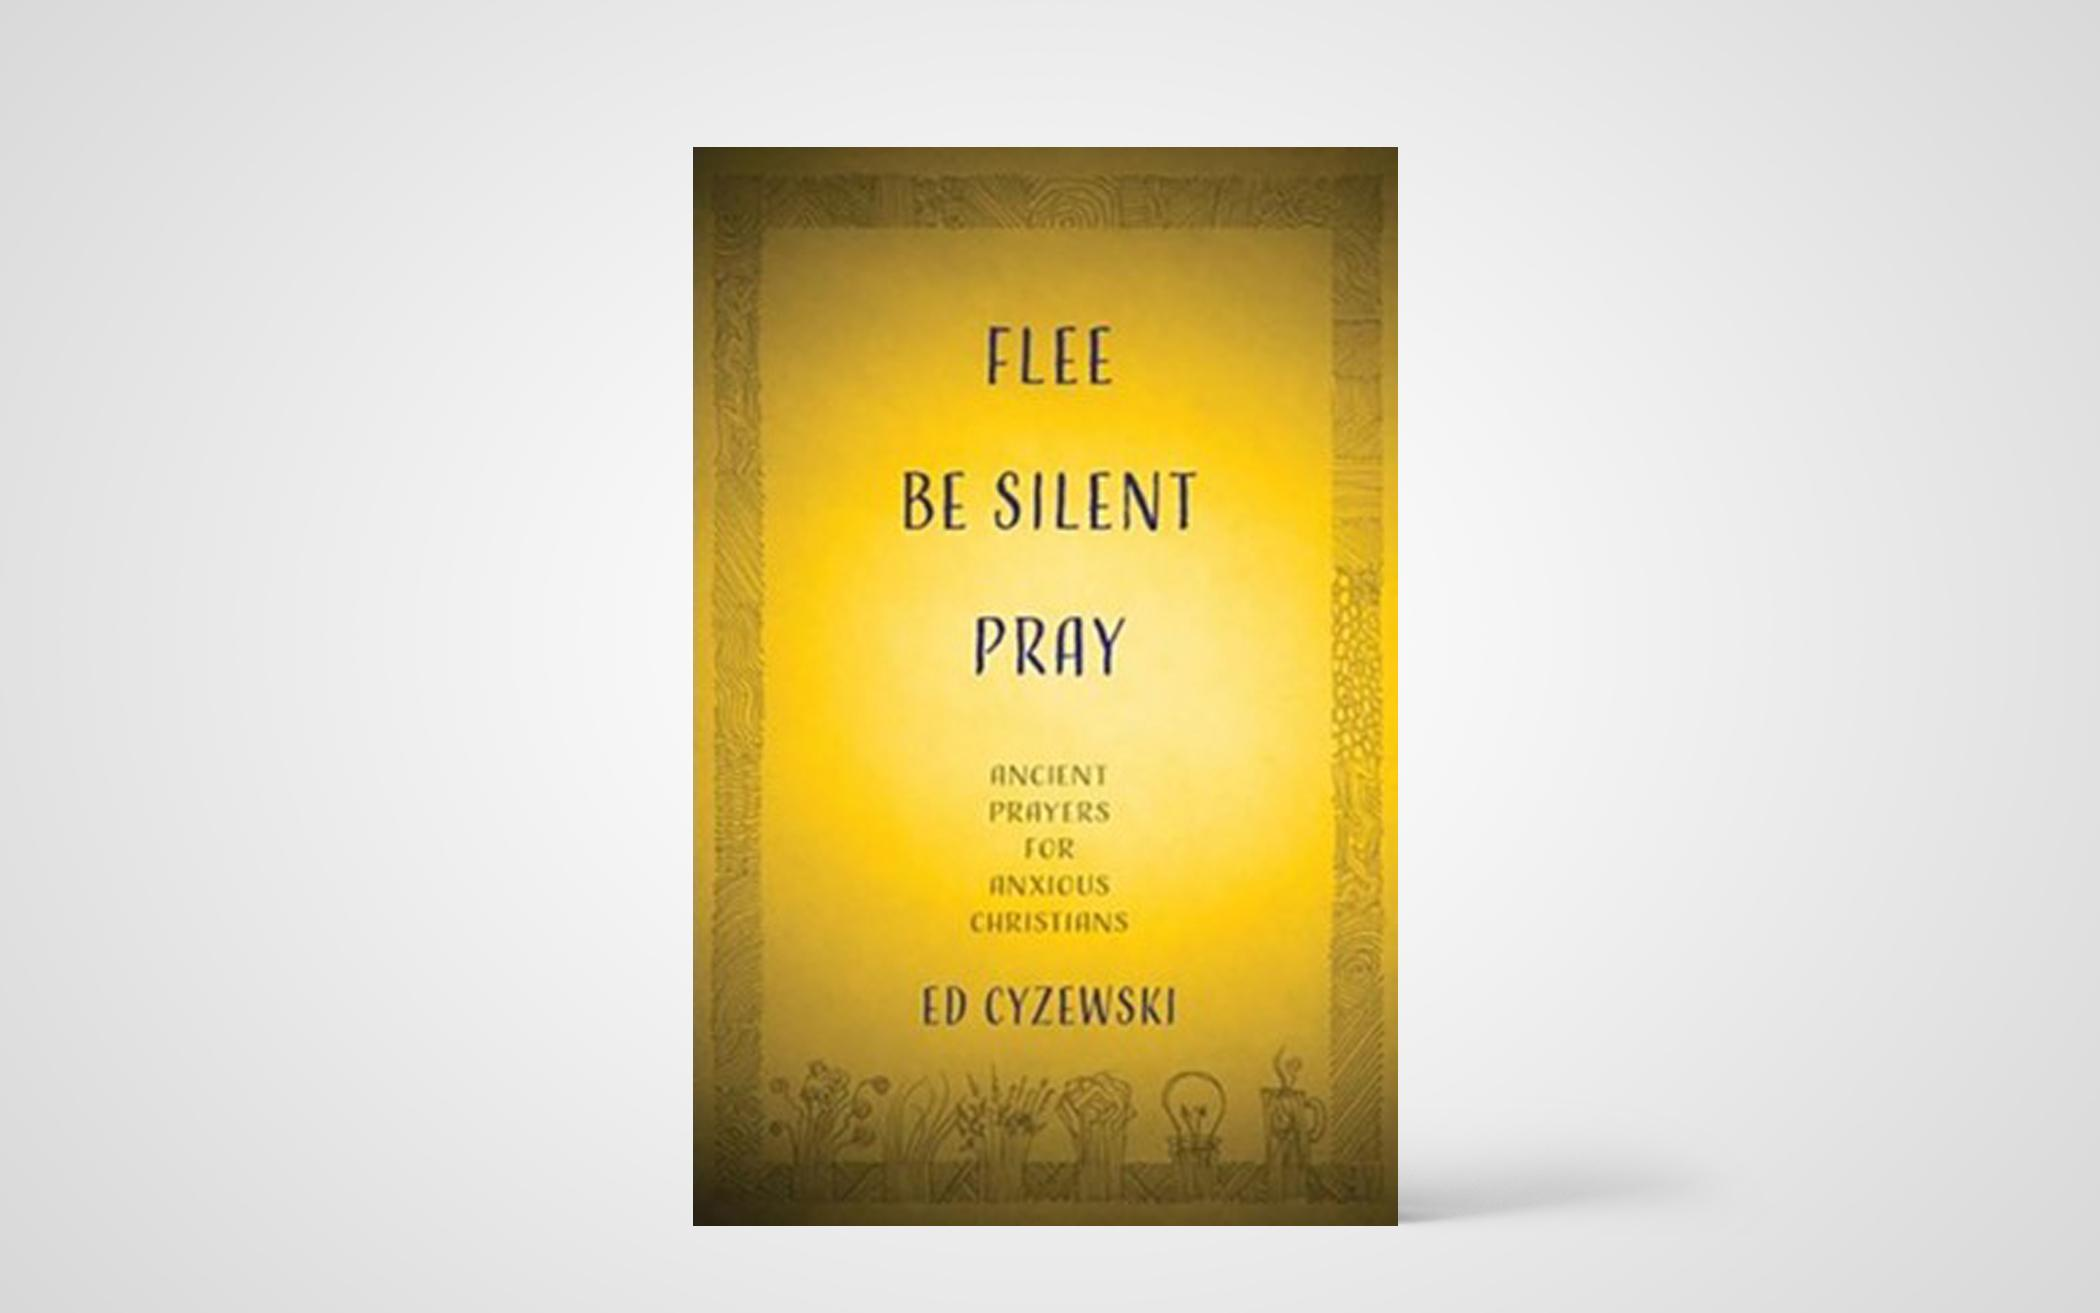 Flee, Be Silent, Pray: Ancient Prayers for Anxious Christians